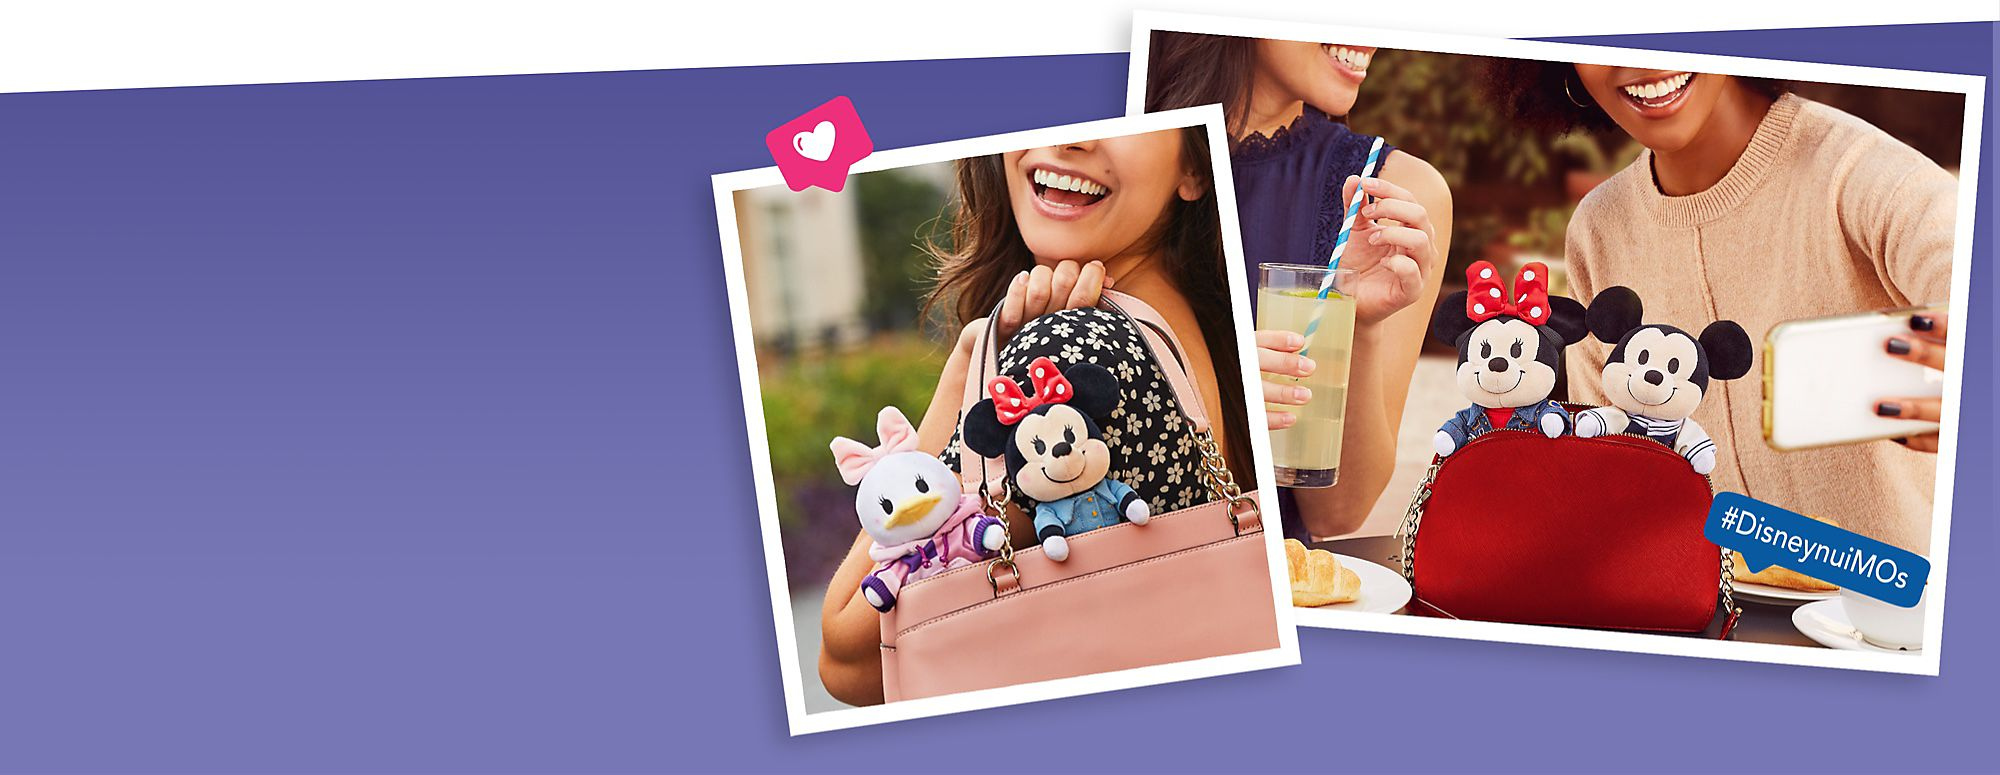 Livin' the Disney nuiMOs Life Join the fun and share the full Disney  nuiMOs experience #DisneynuiMOs